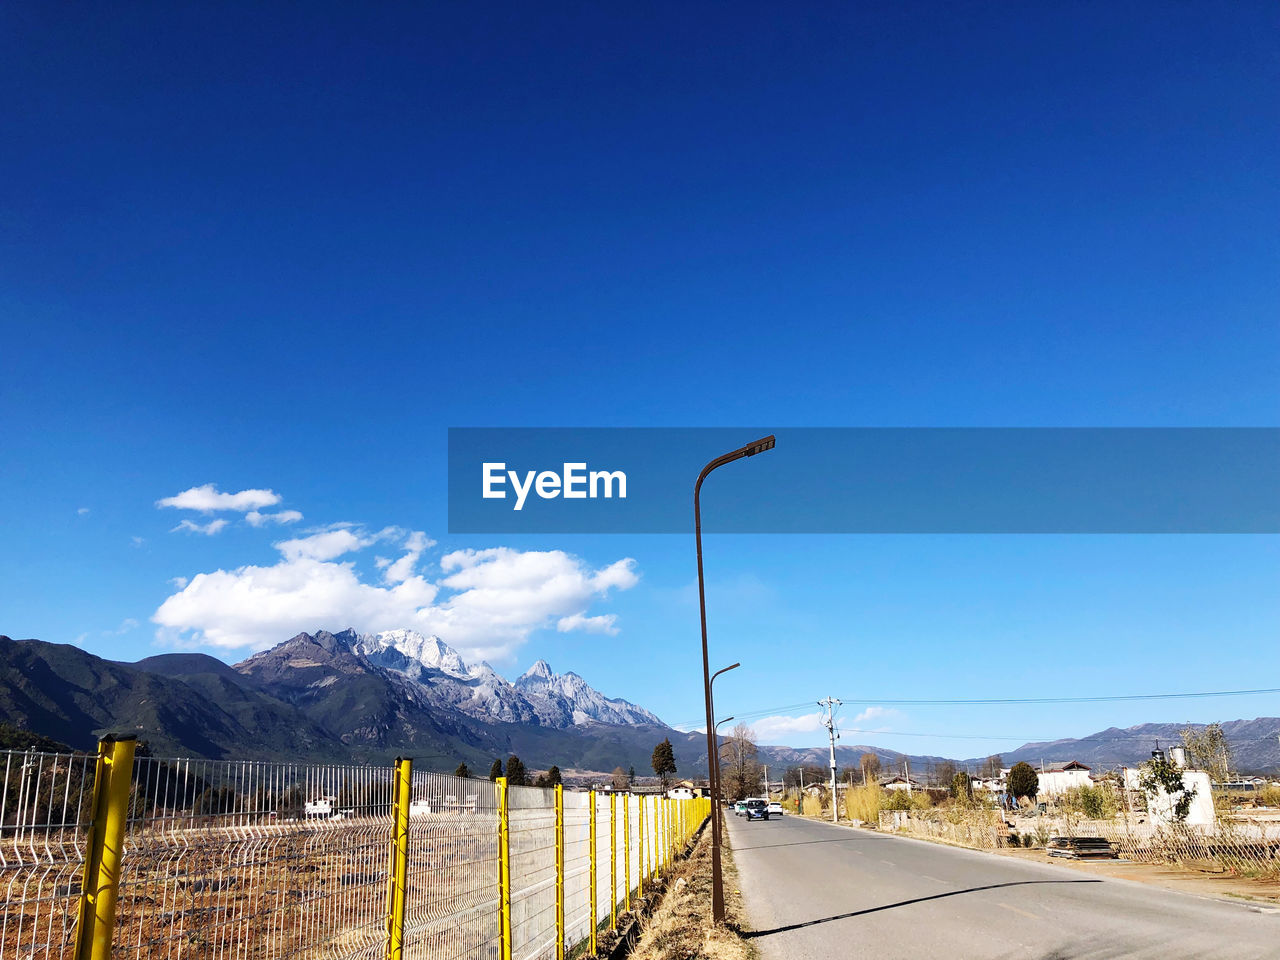 sky, mountain, blue, road, scenics - nature, nature, street light, street, mountain range, beauty in nature, barrier, transportation, no people, tranquility, tranquil scene, the way forward, direction, fence, day, copy space, outdoors, snowcapped mountain